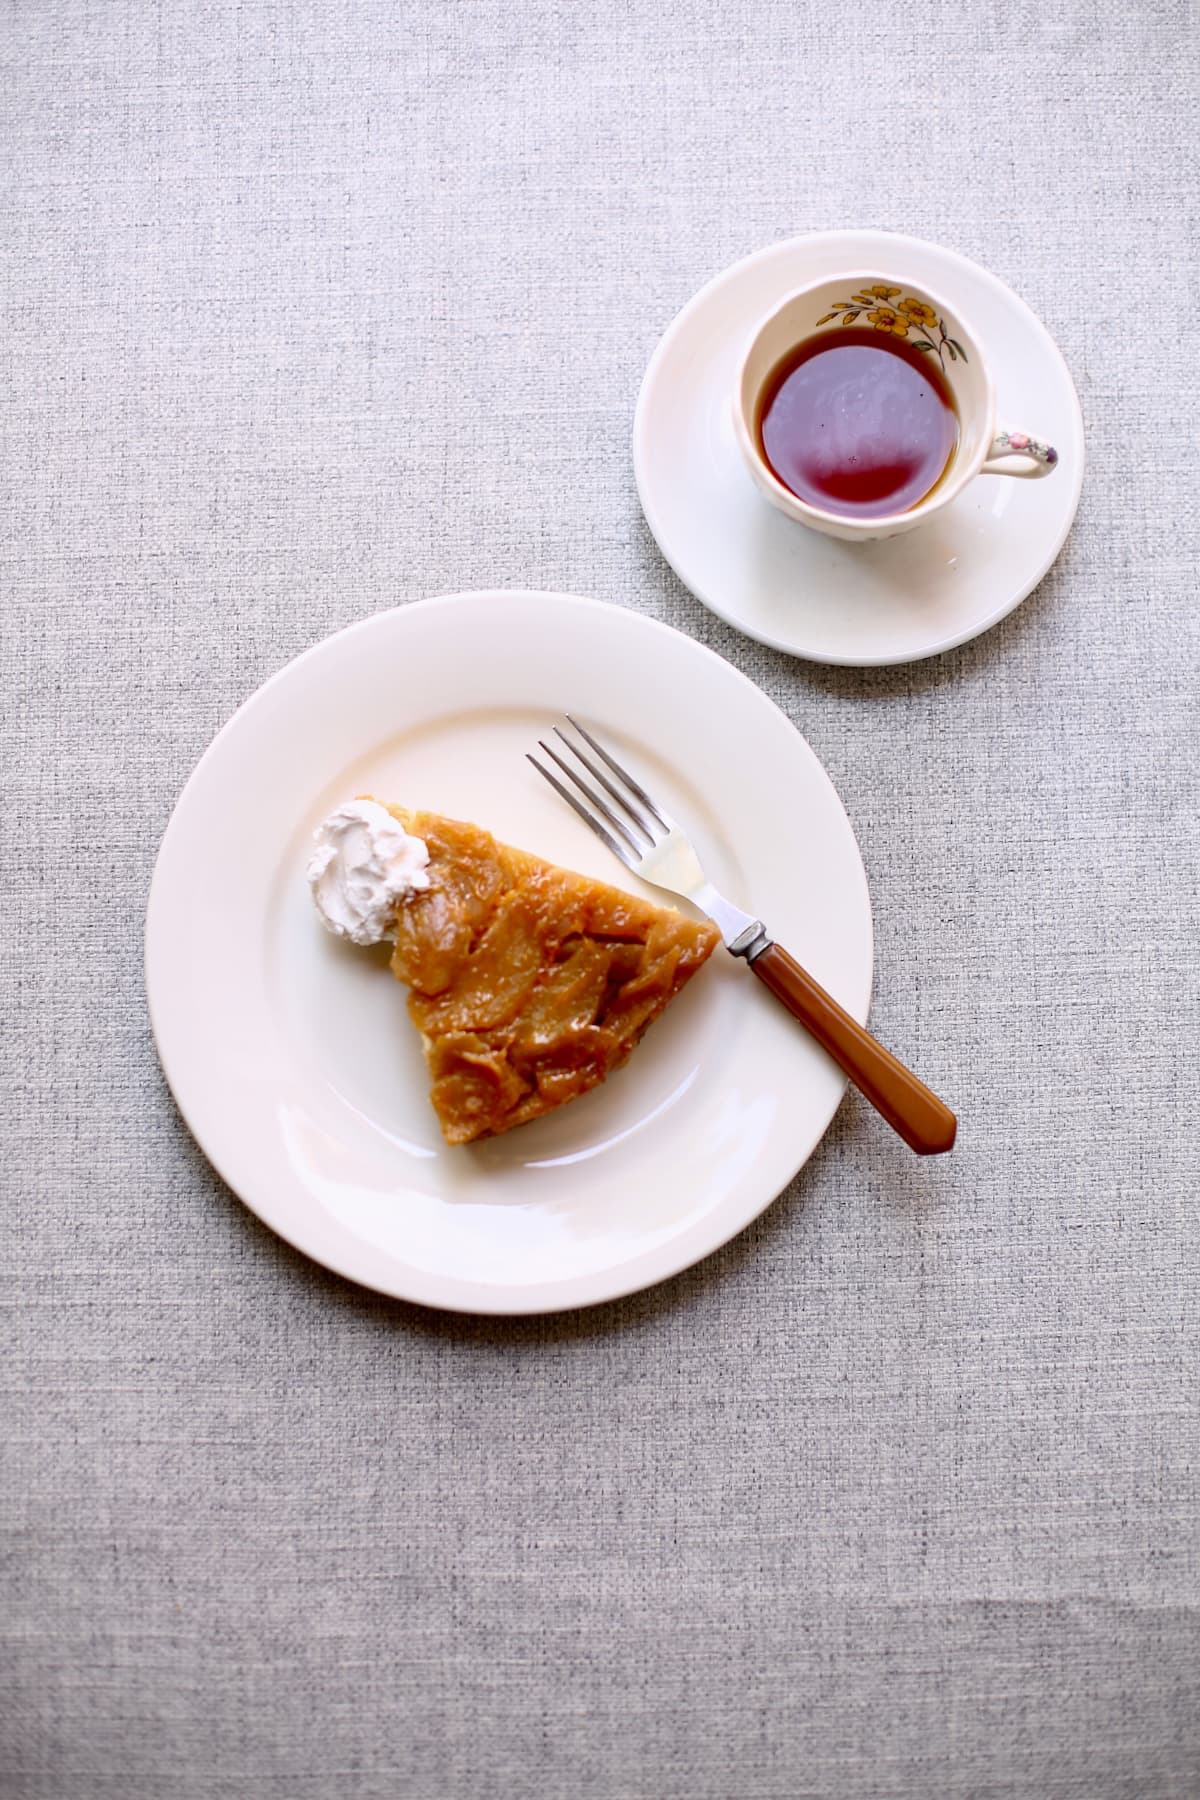 a piece of cake on a white plate, with a saucer of hto tea next to it. The plate has a brown fork next to it.